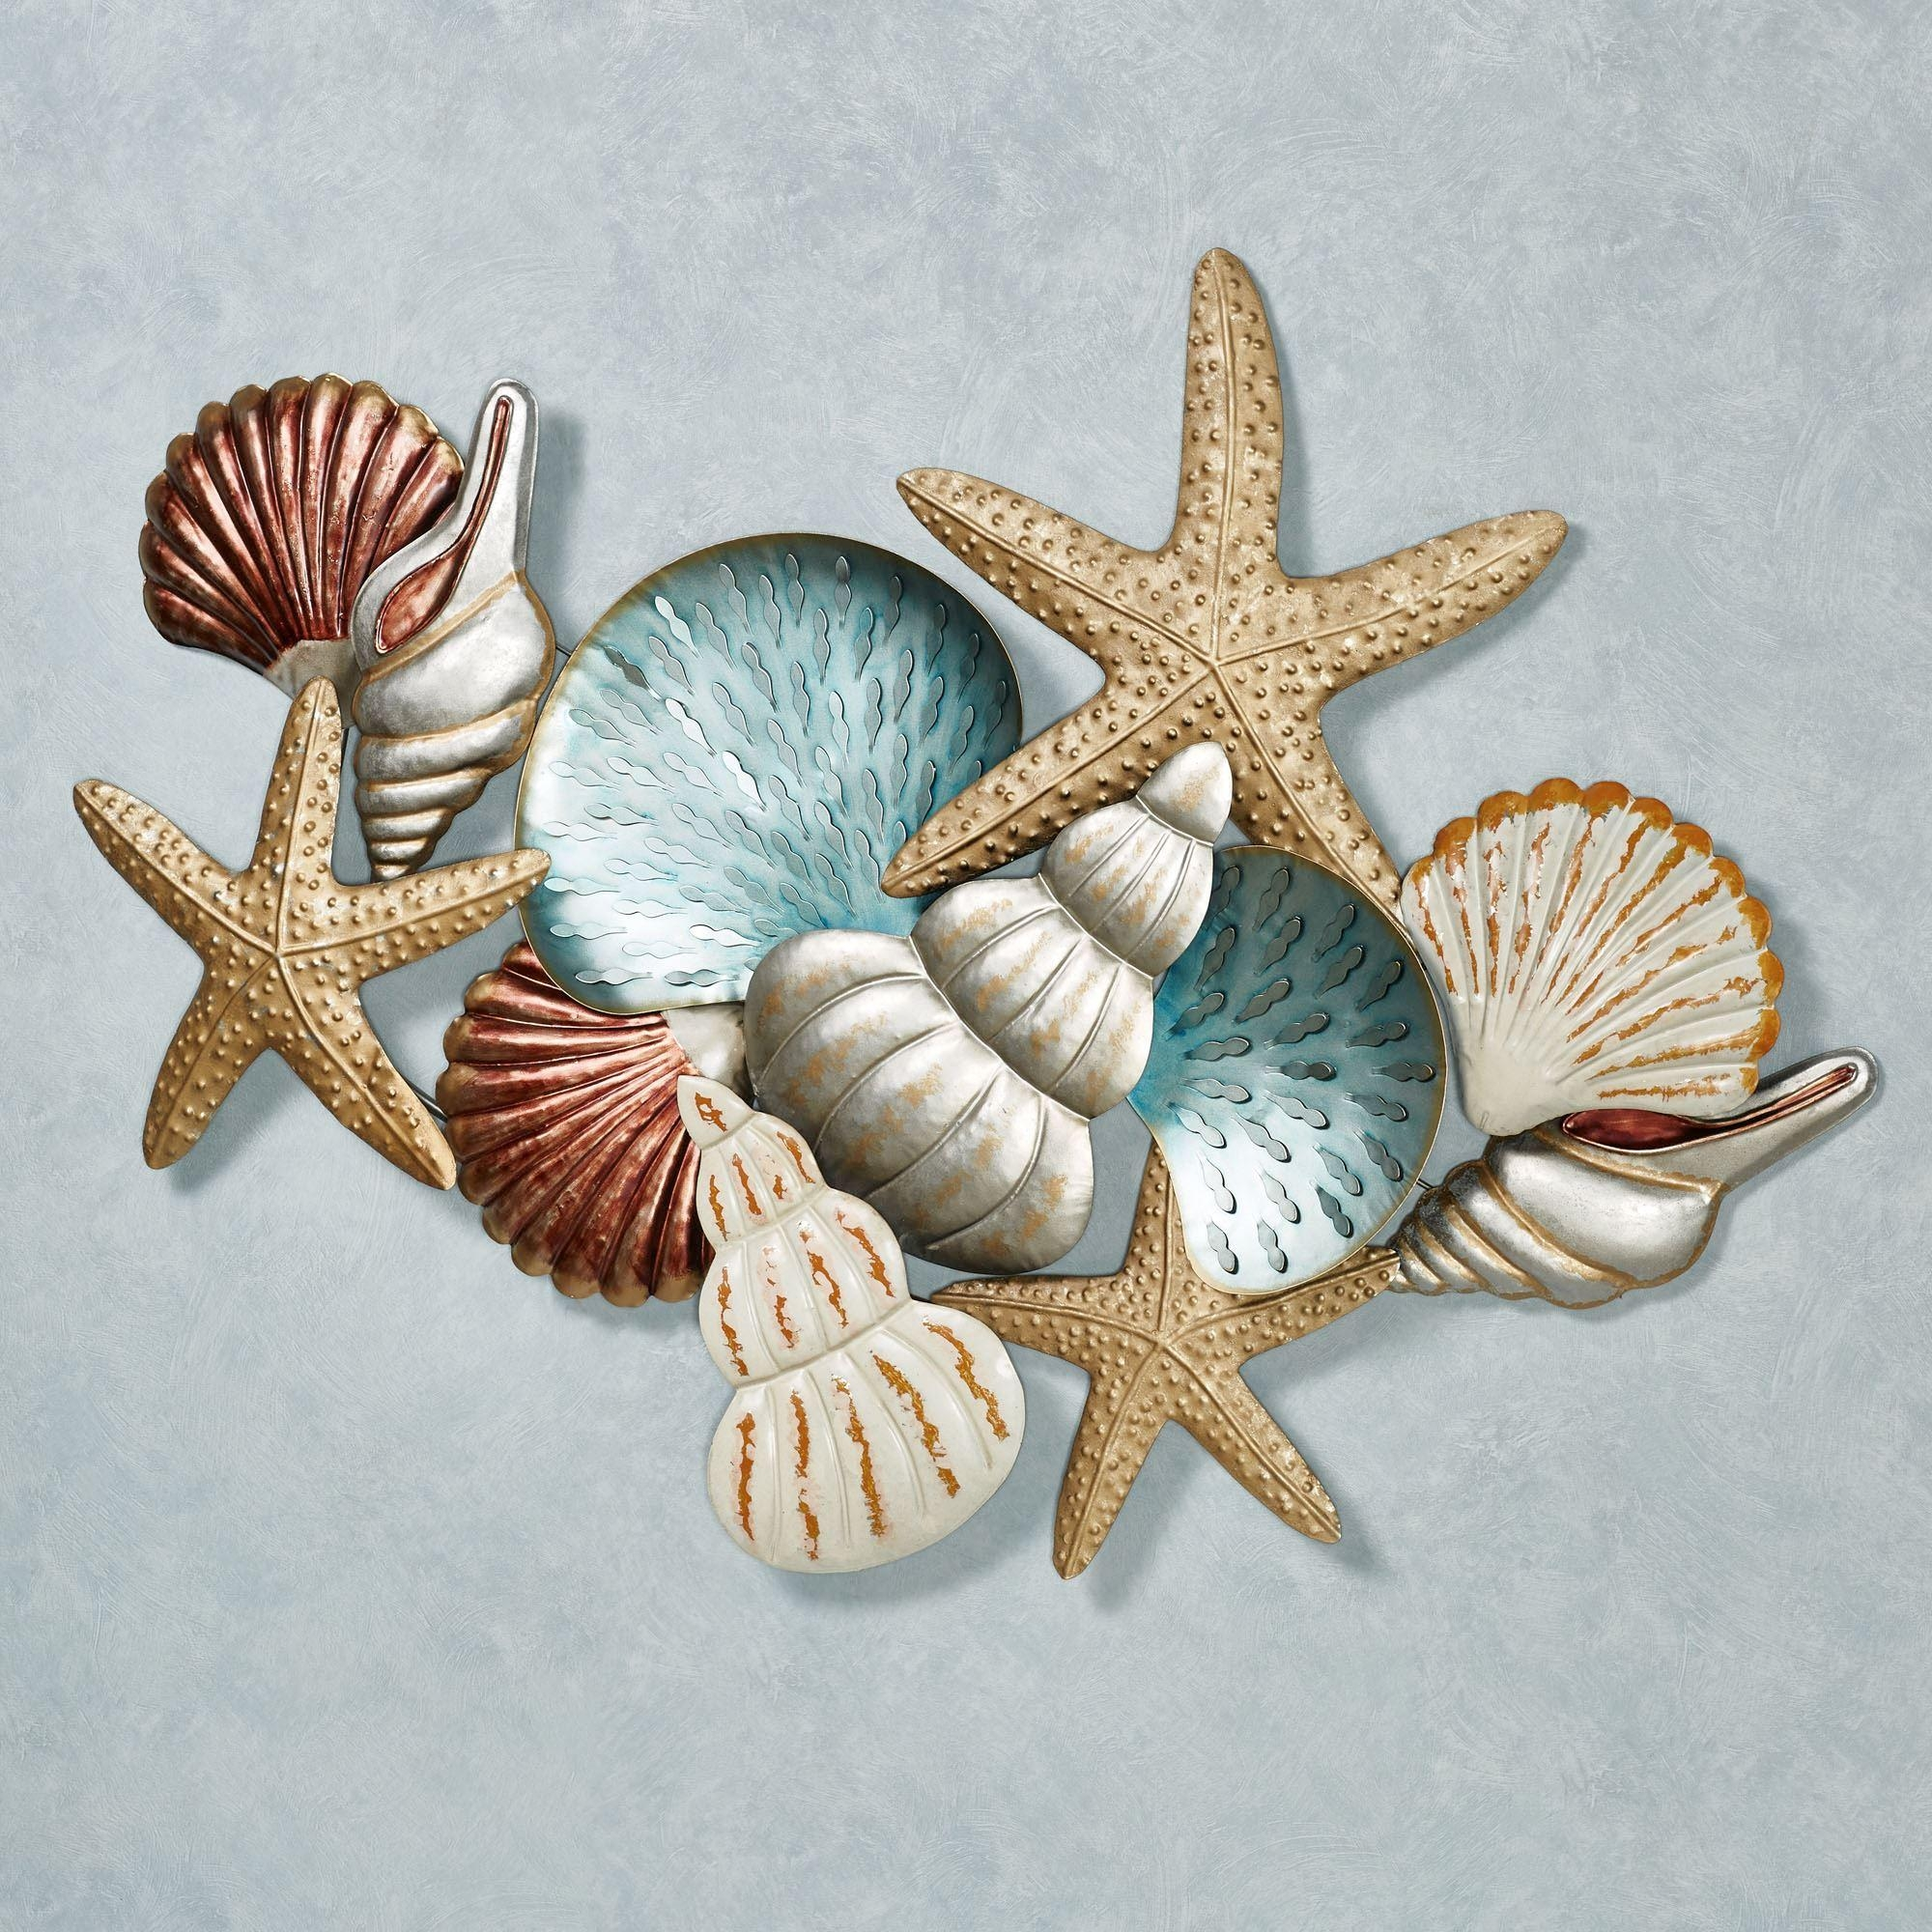 Coastal Metal Wall Sculptures | Touch Of Class Pertaining To Seagull Metal Wall Art (View 10 of 20)